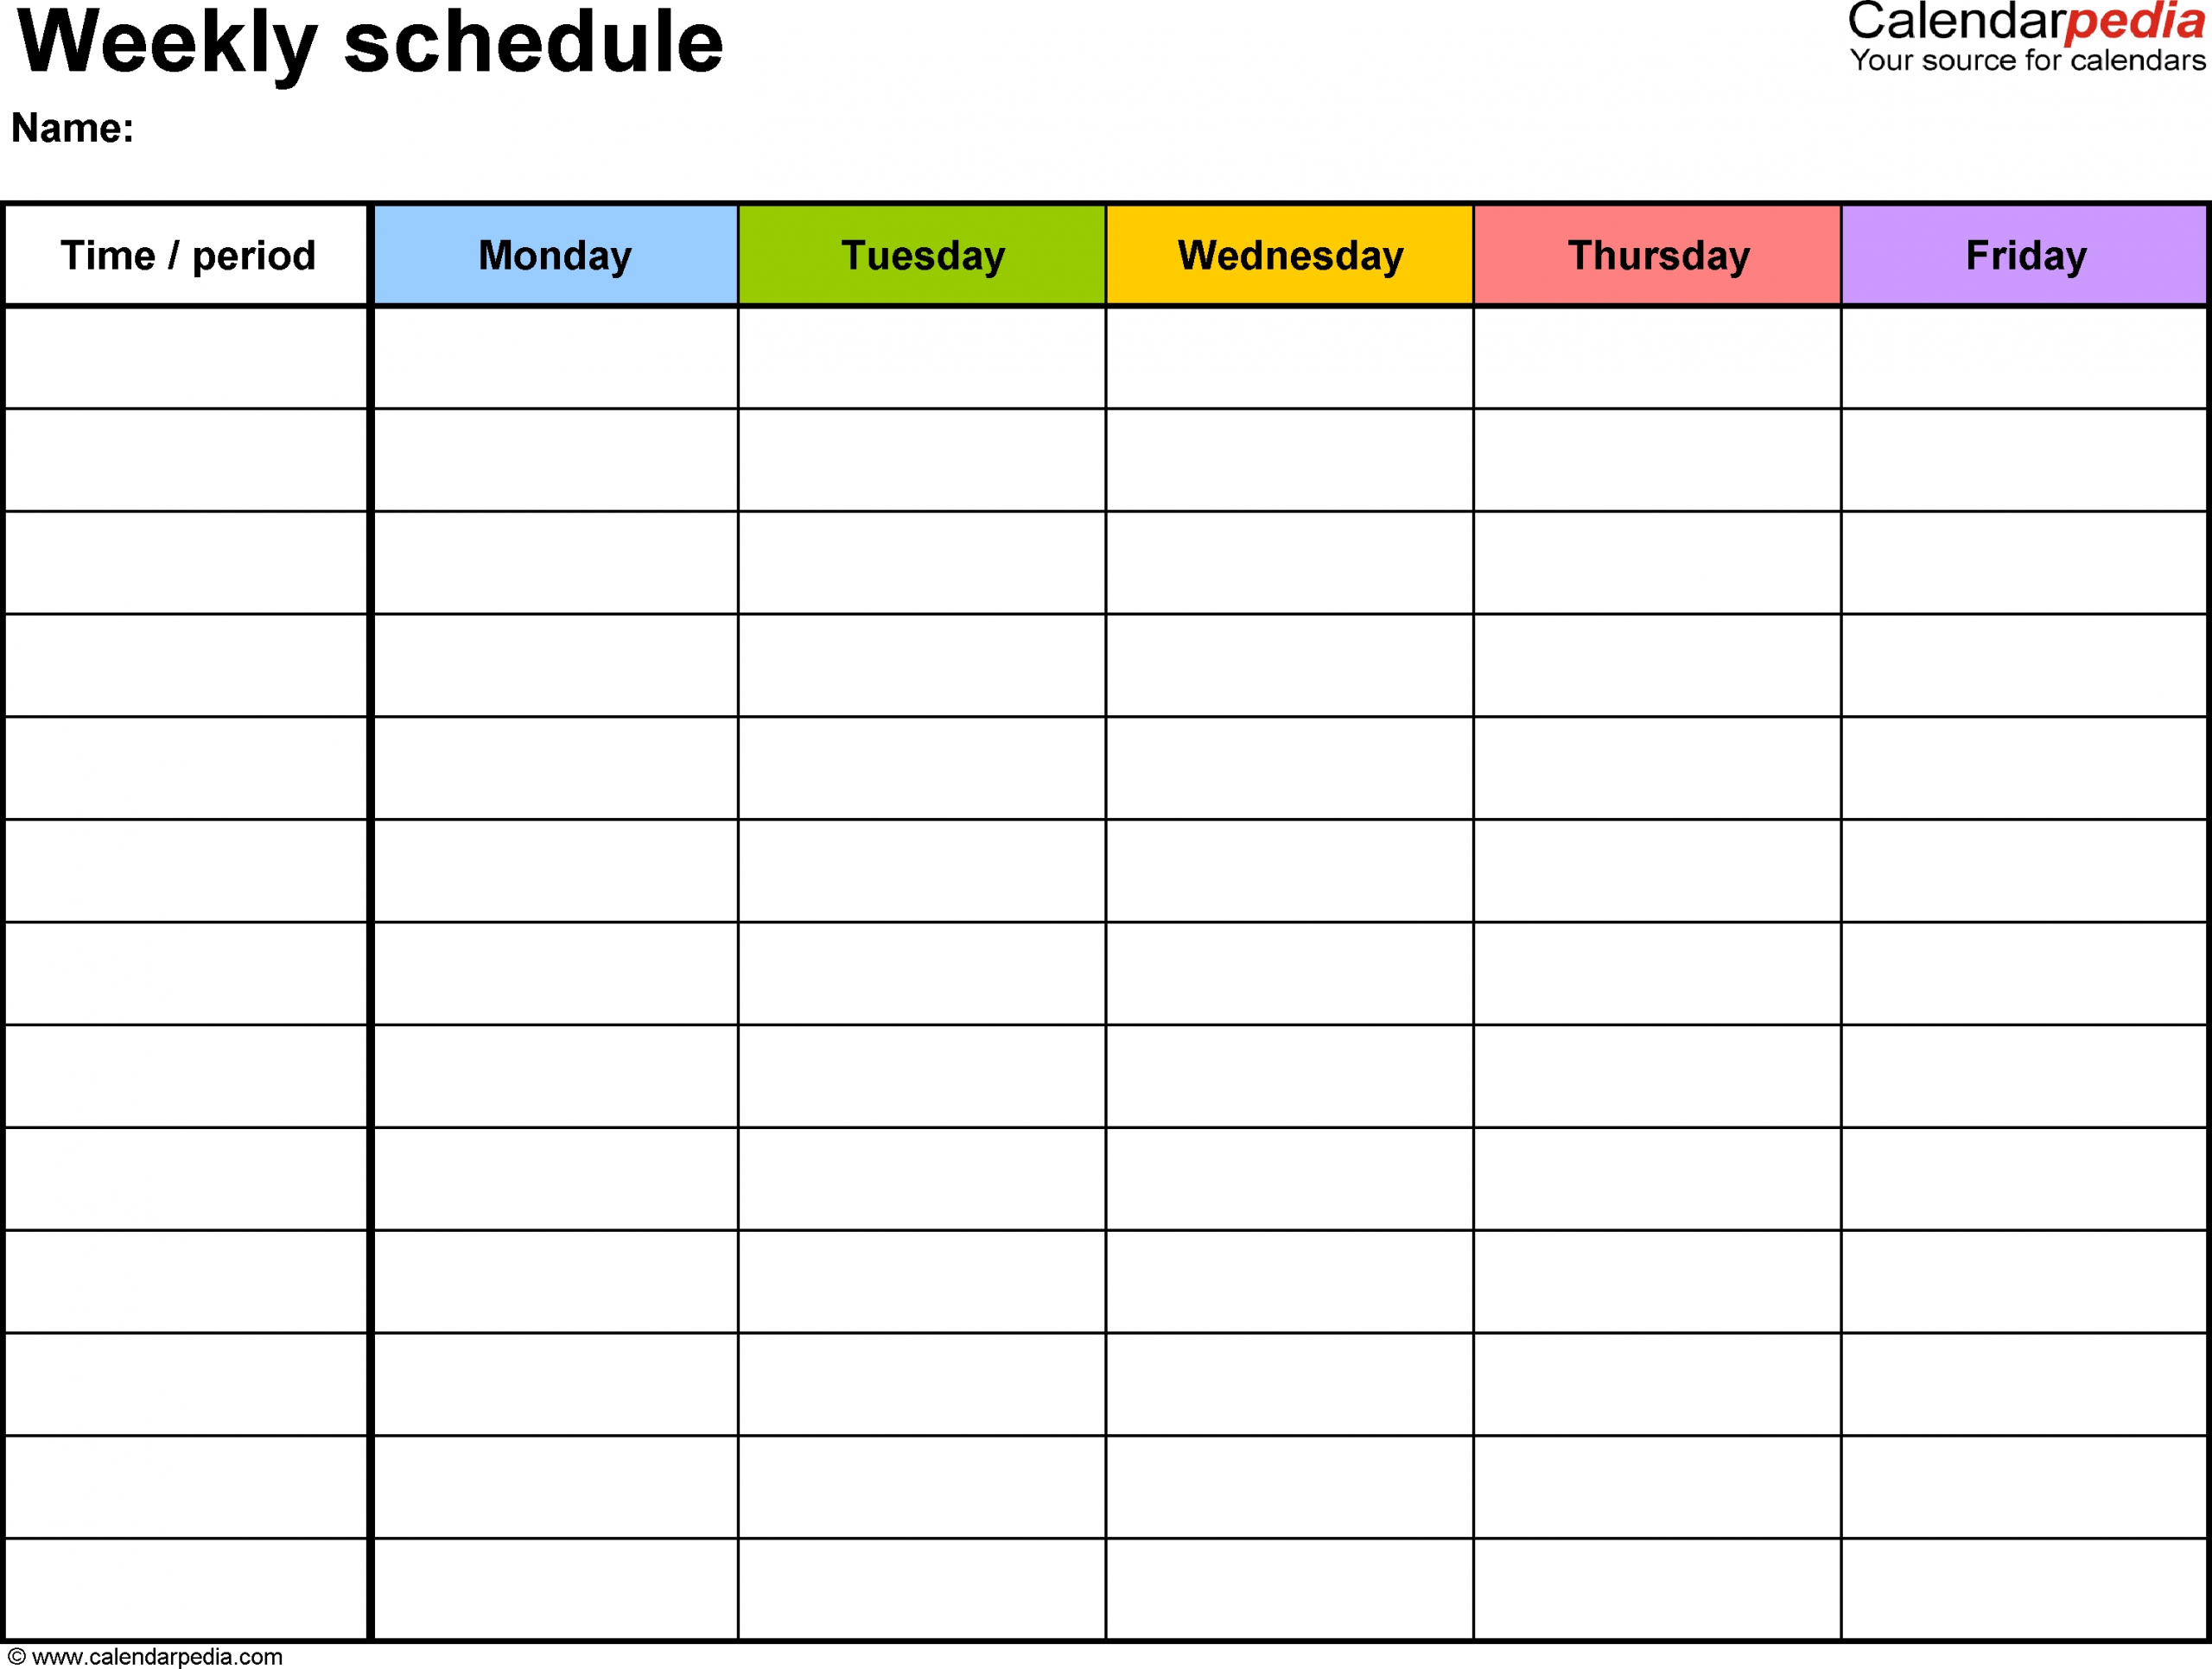 Printable Weekly Calendar | Calendar For Planning intended for Weekly Calendar Monday Through Friday